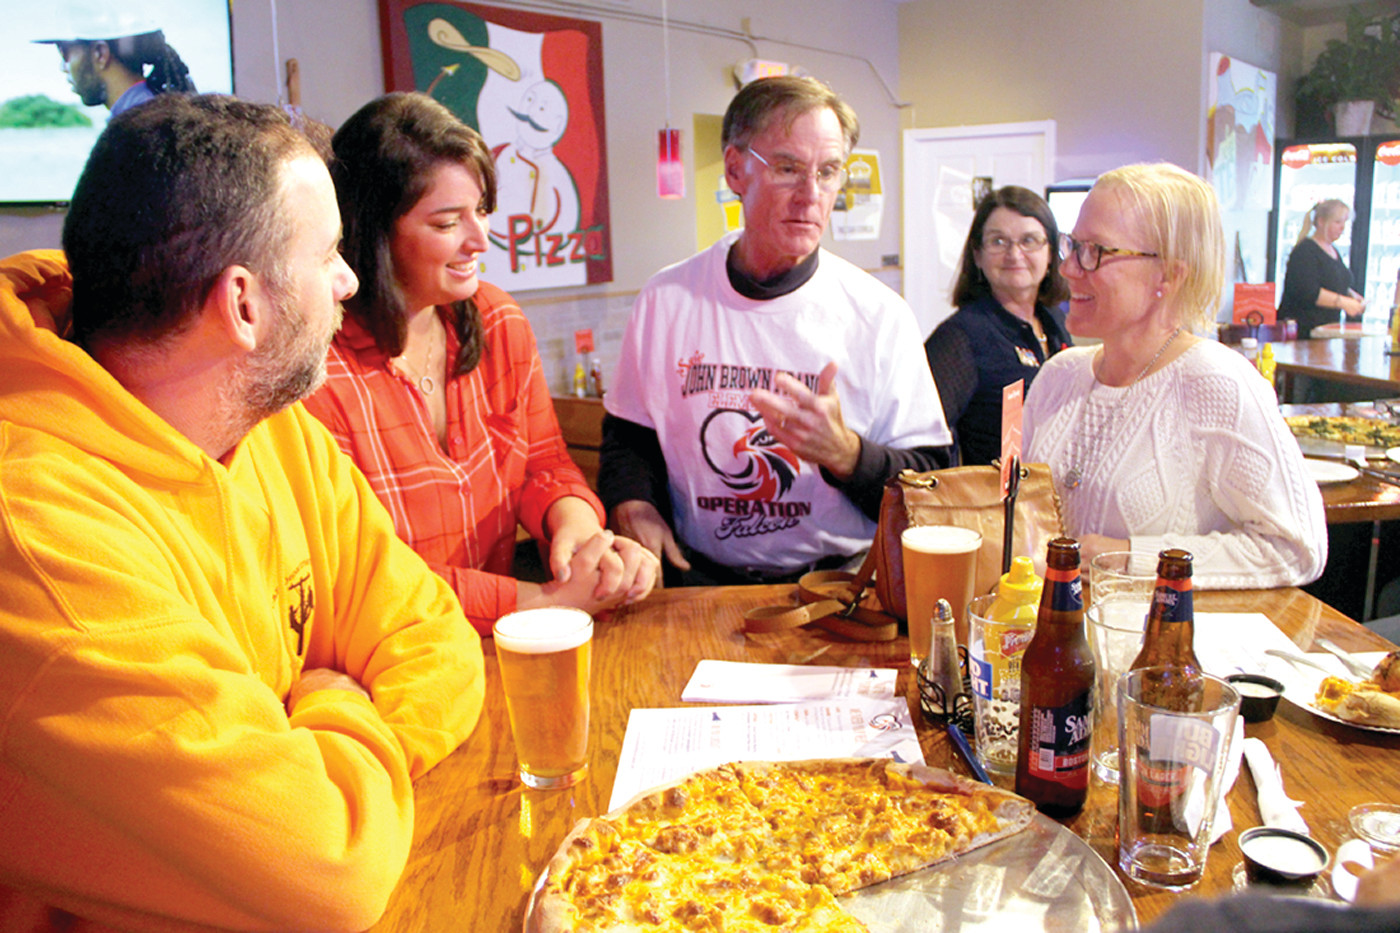 PLANS AND PIZZA: Members of Operation Falcon, a group working to save John Brown Francis School from being re-purposed as the city's early childhood center, met at Palazzo's Pizza Thursday. From left: John Dmato, Vanessa Carnevale, Councilman Richard Corley and Mary Martin.